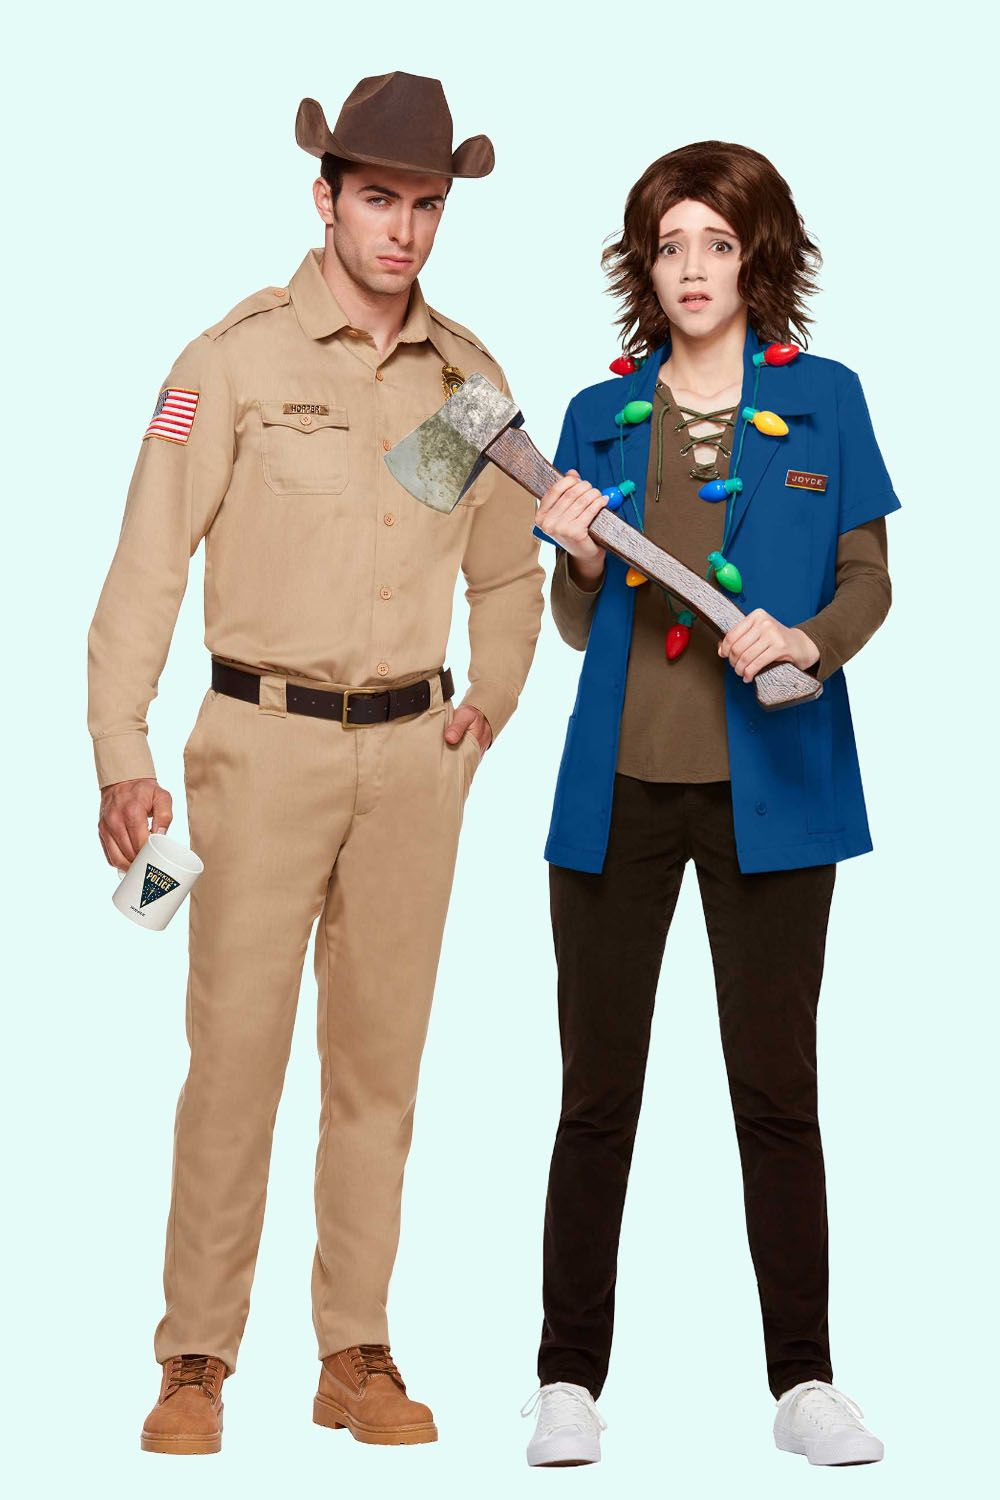 stranger things couples costume  sc 1 st  Good Housekeeping & 50+ Cute Halloween Costumes for Couples 2018 - Best Ideas for ...